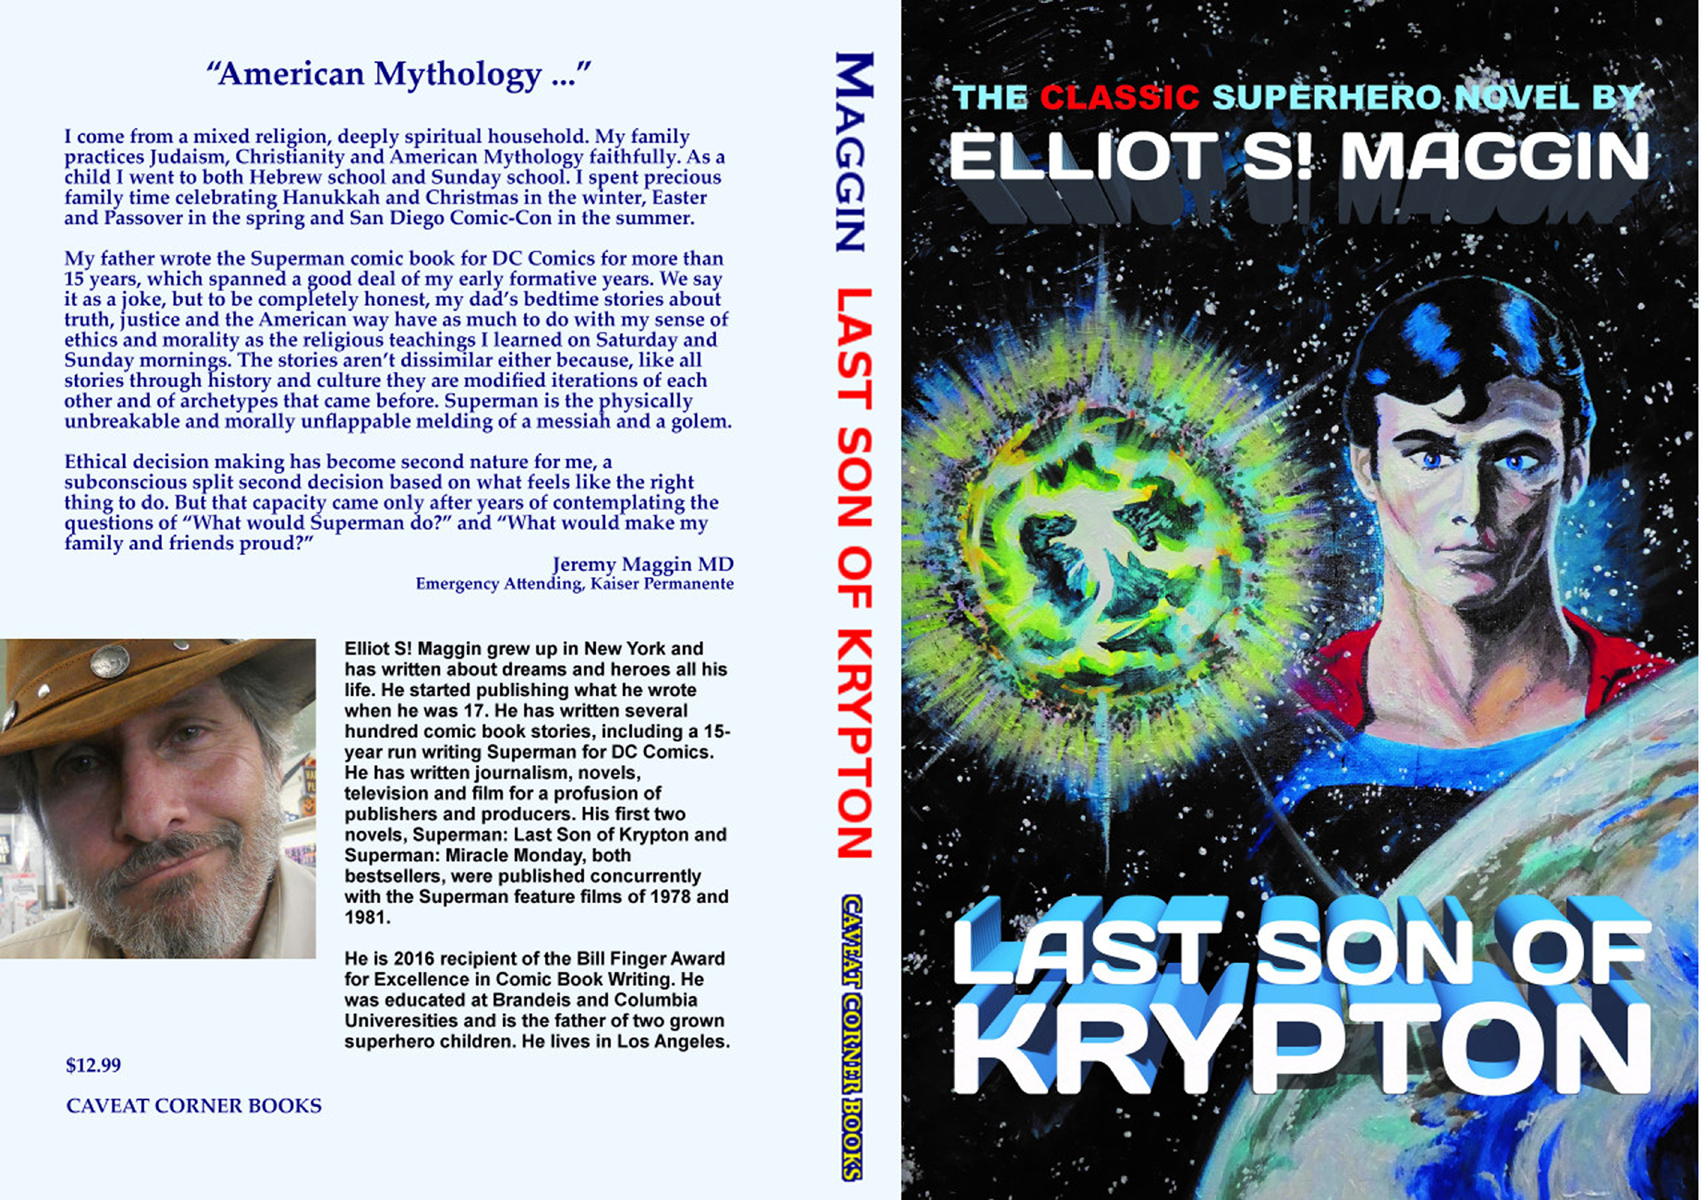 Last Son of Krypton cover